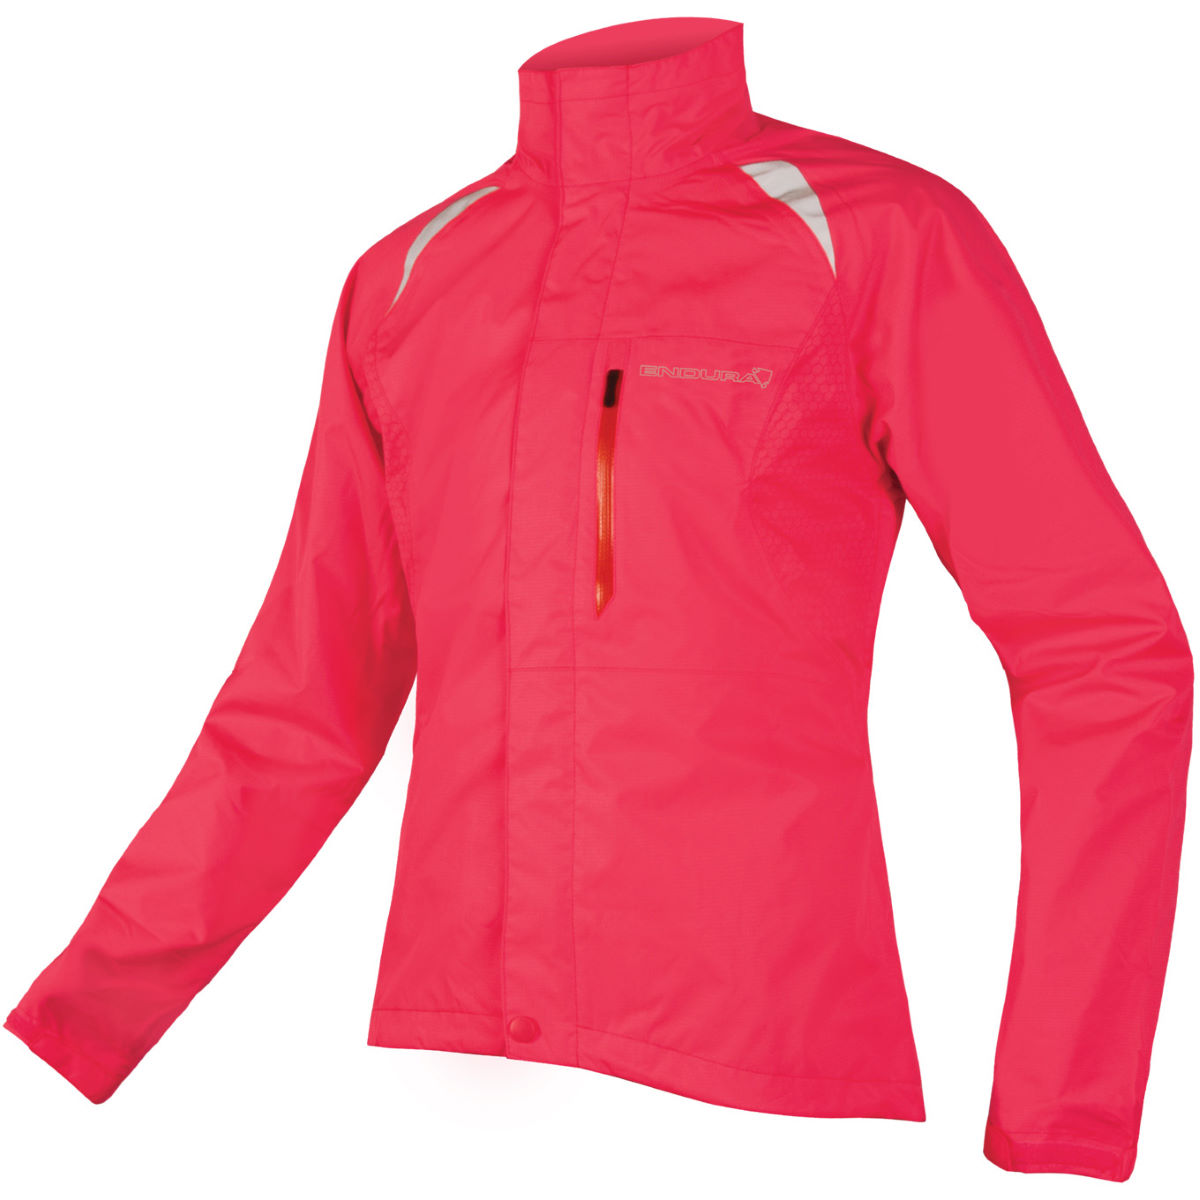 Endura Women's Gridlock II Jacket - S HV Yellow